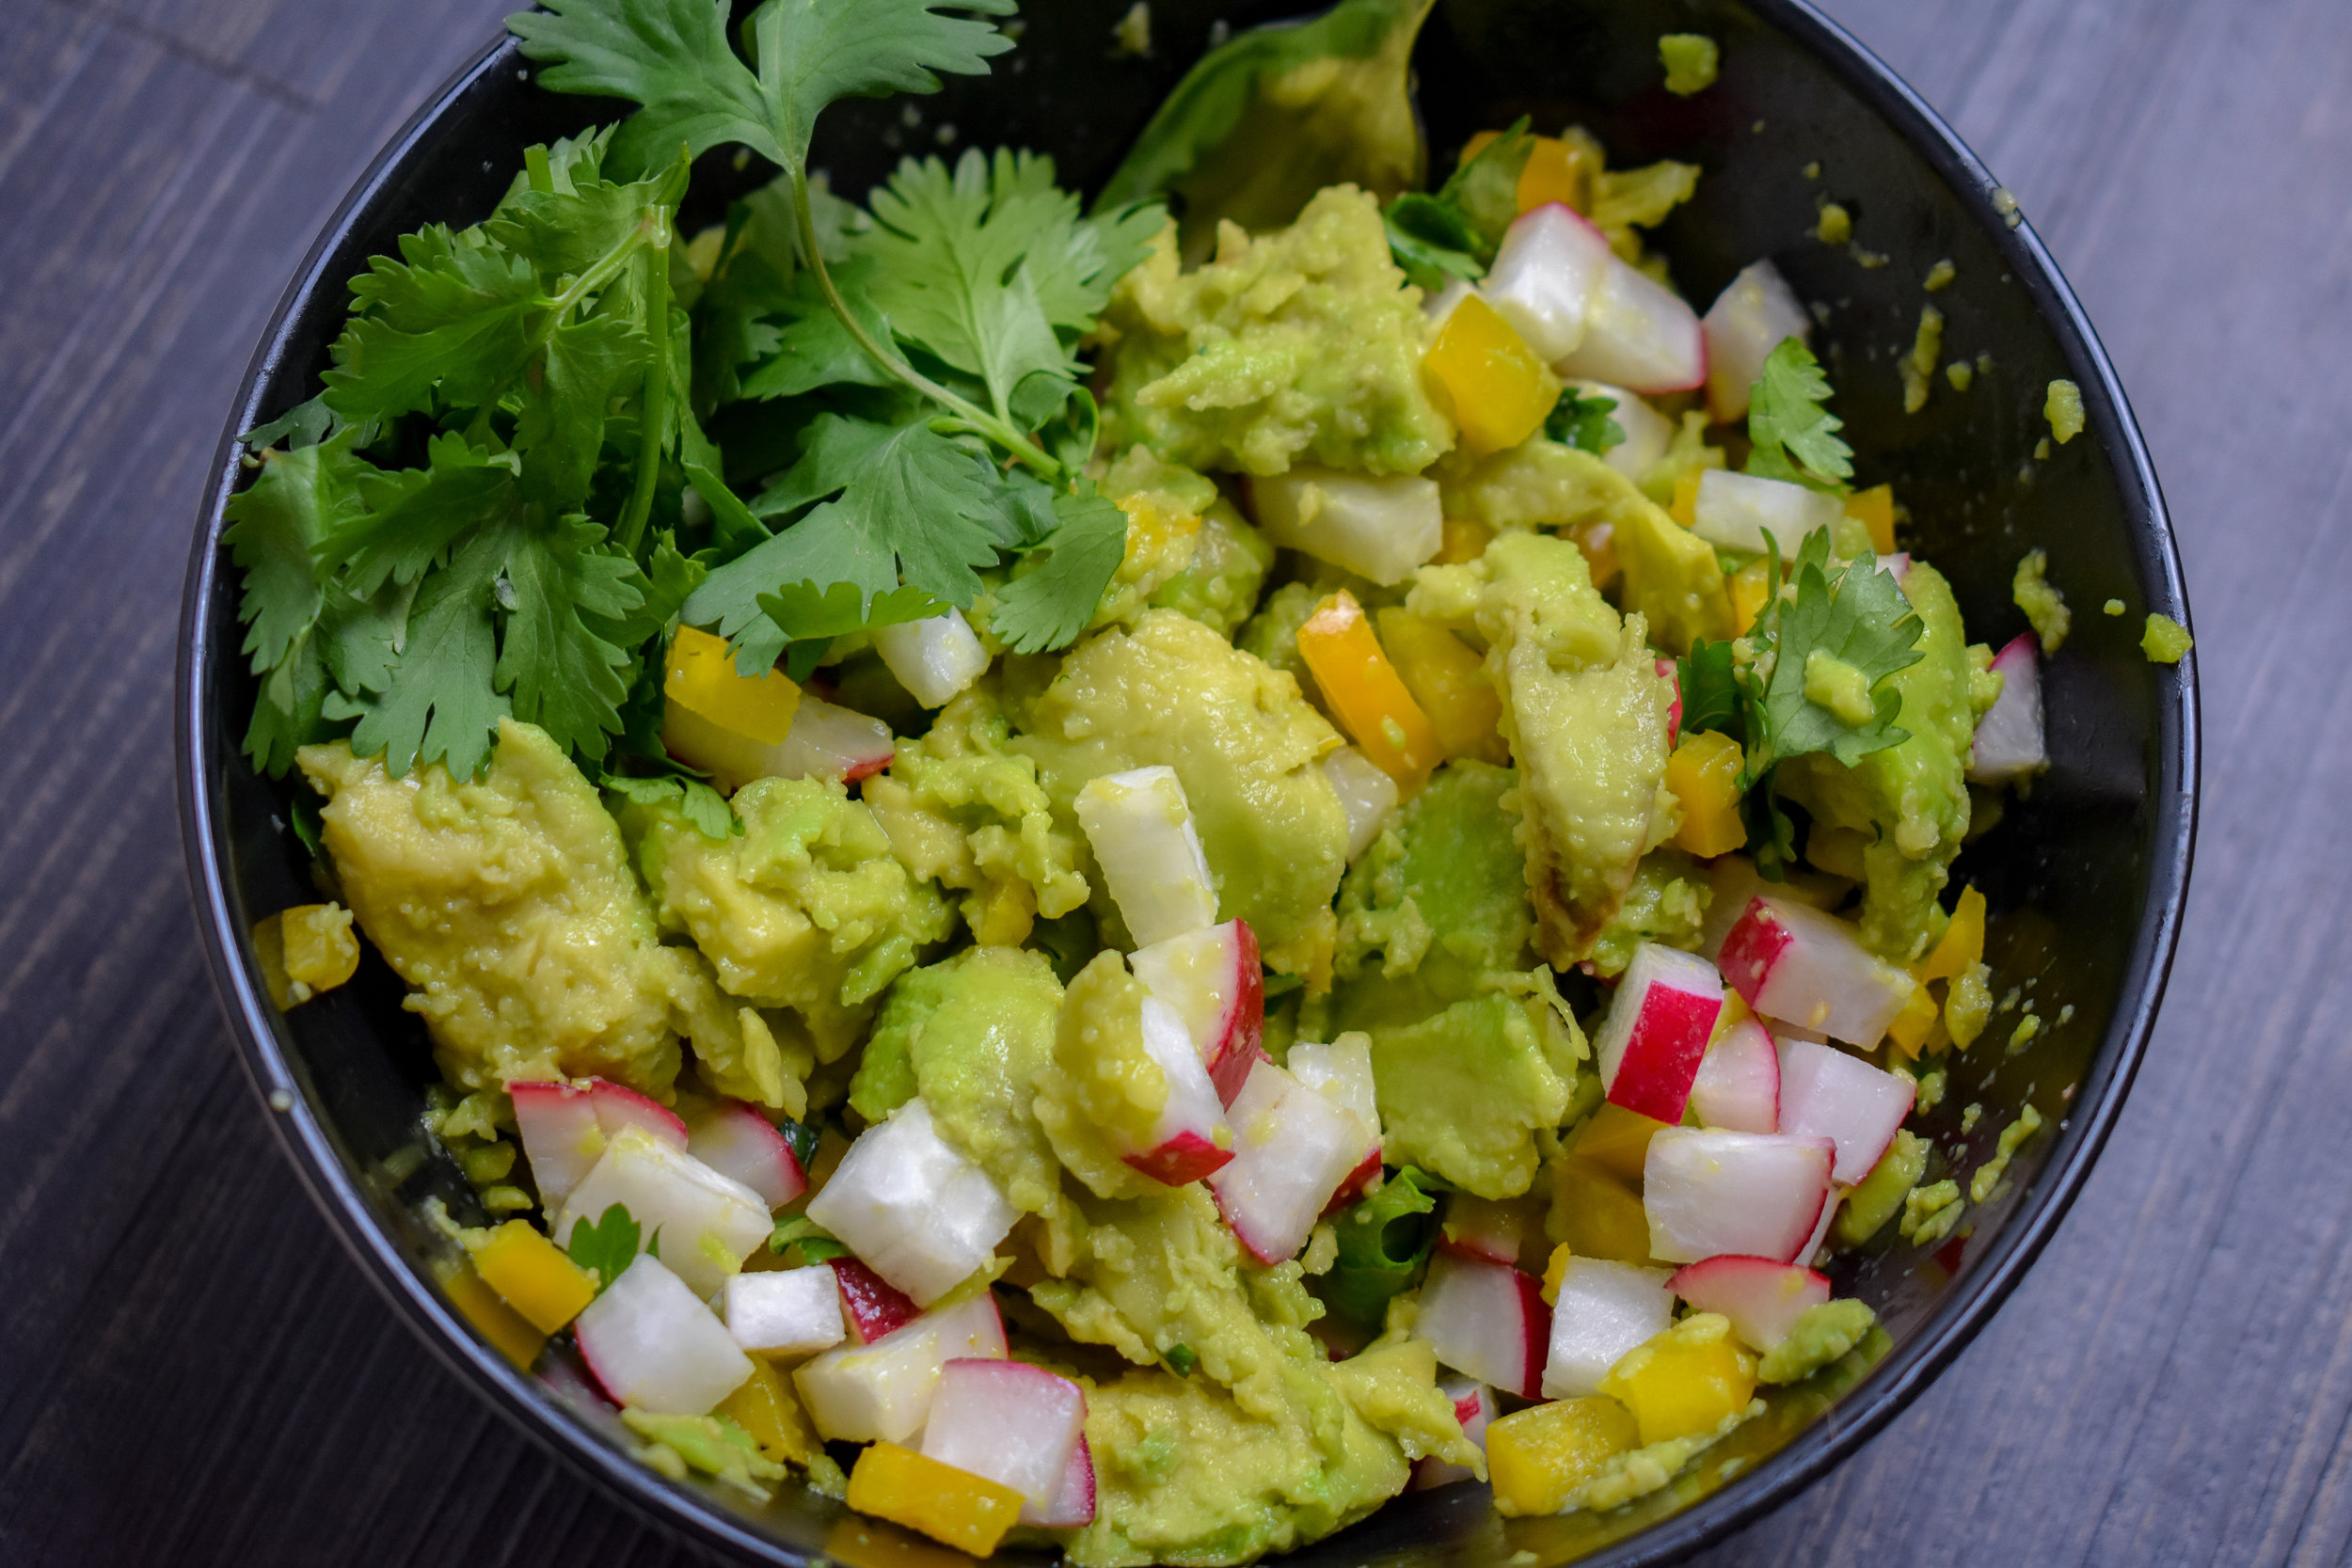 6. Finally, for prep, mix together the guacamole ingredients.